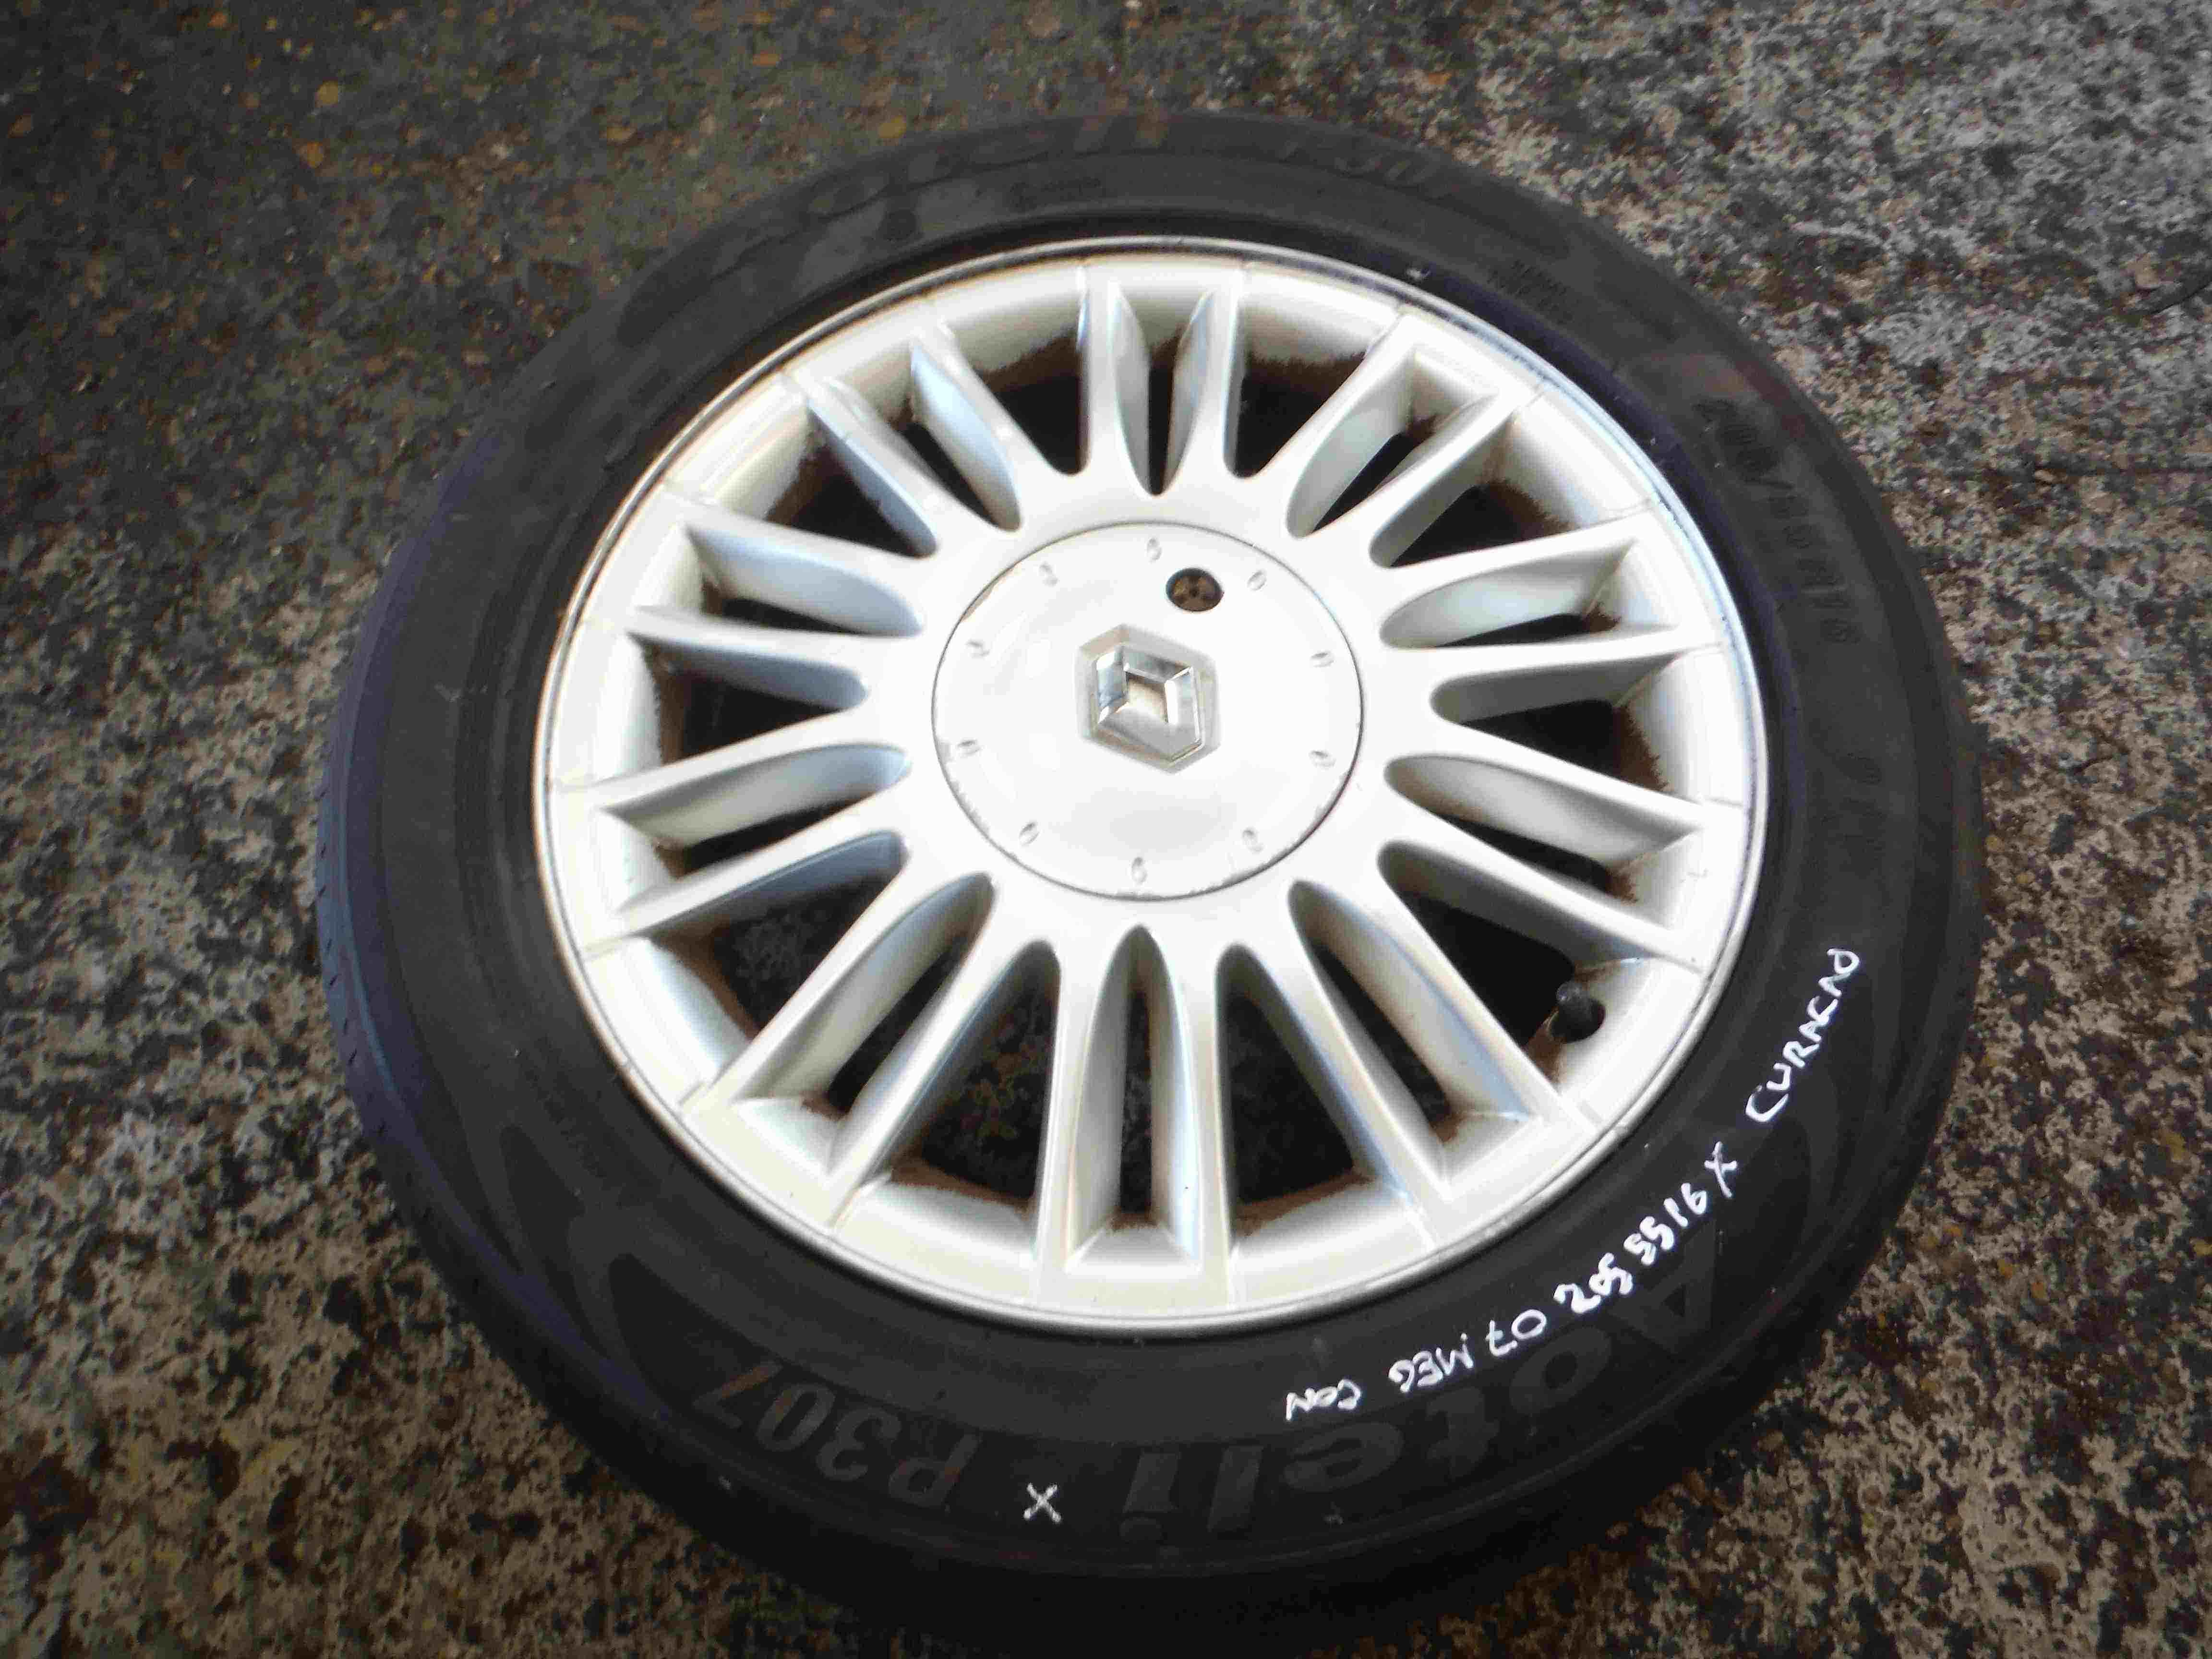 Renault Megane Convertible 2002-2008 Curacao Alloy Wheel 16inch 205 55 16 6mm